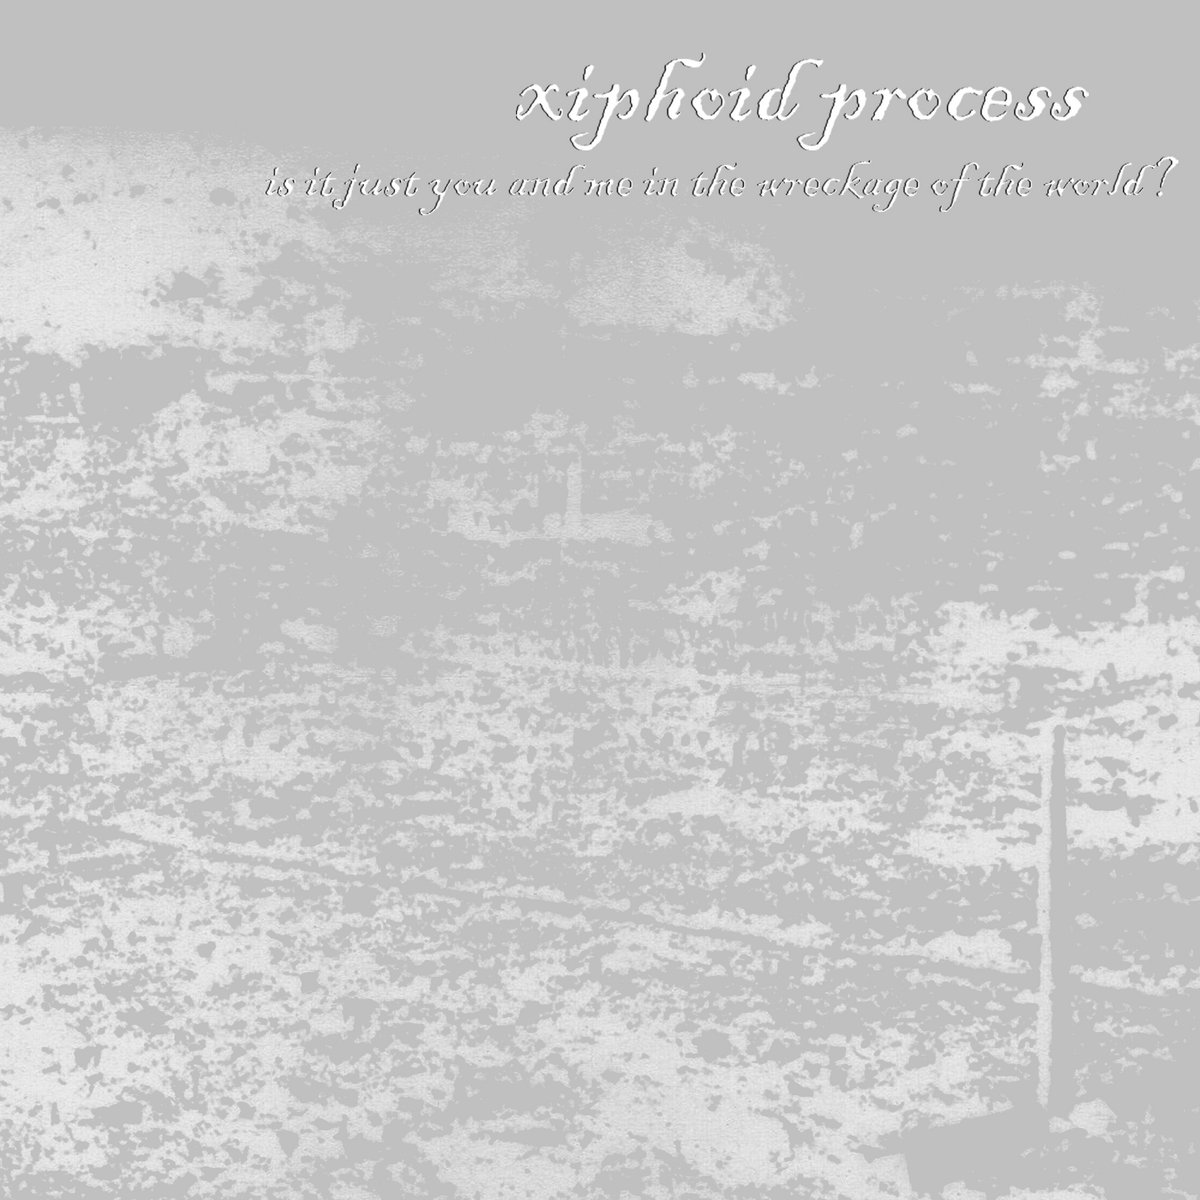 impermanence   xiphoid process